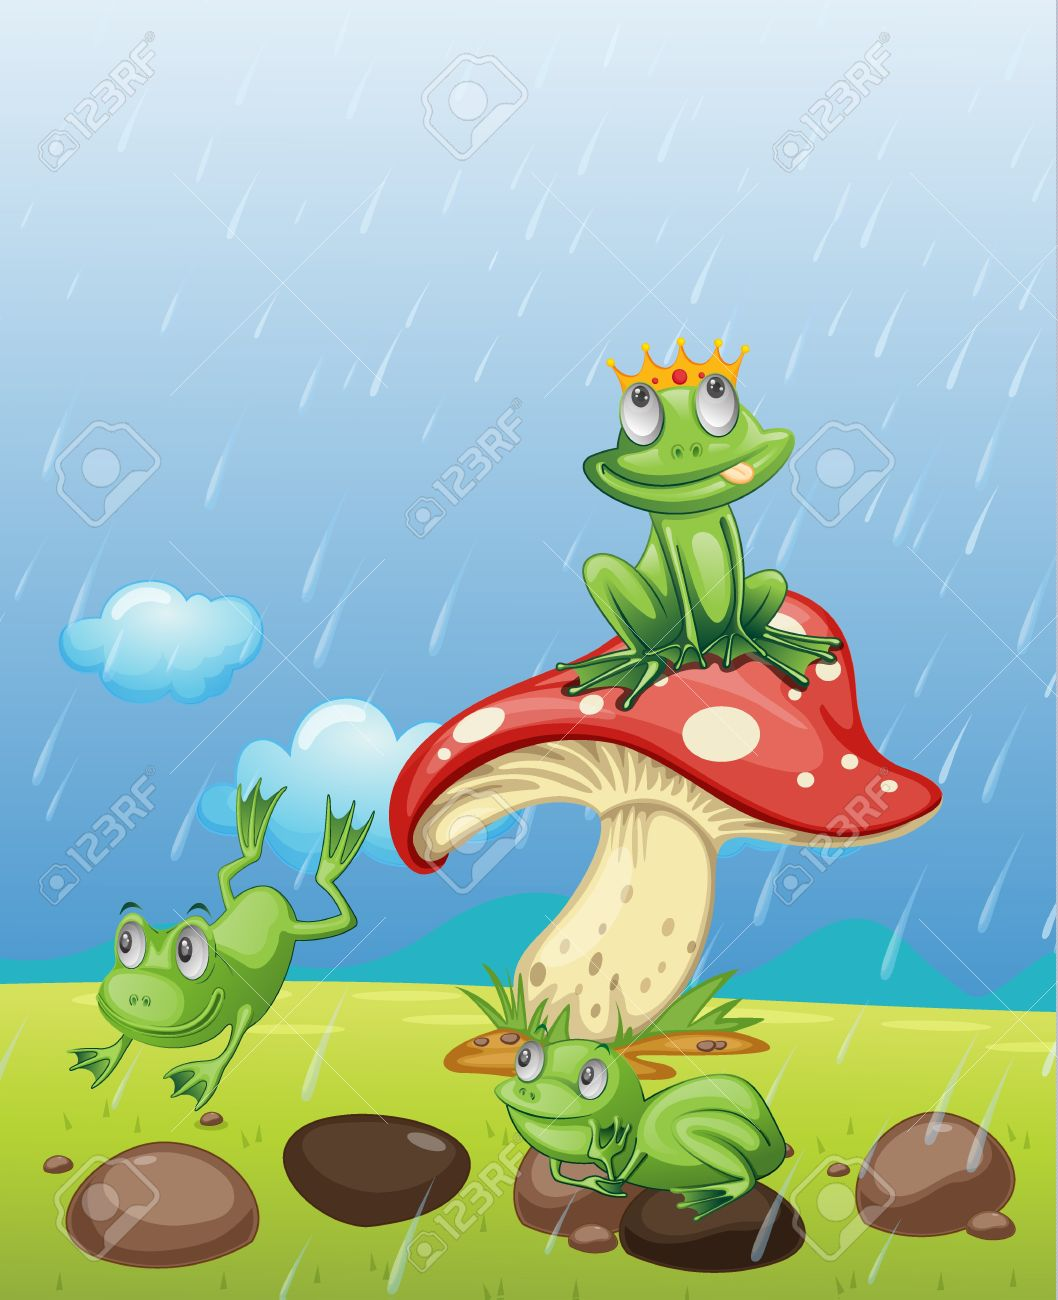 Illustration Of Frogs Playing In The Rain Royalty Free Cliparts.